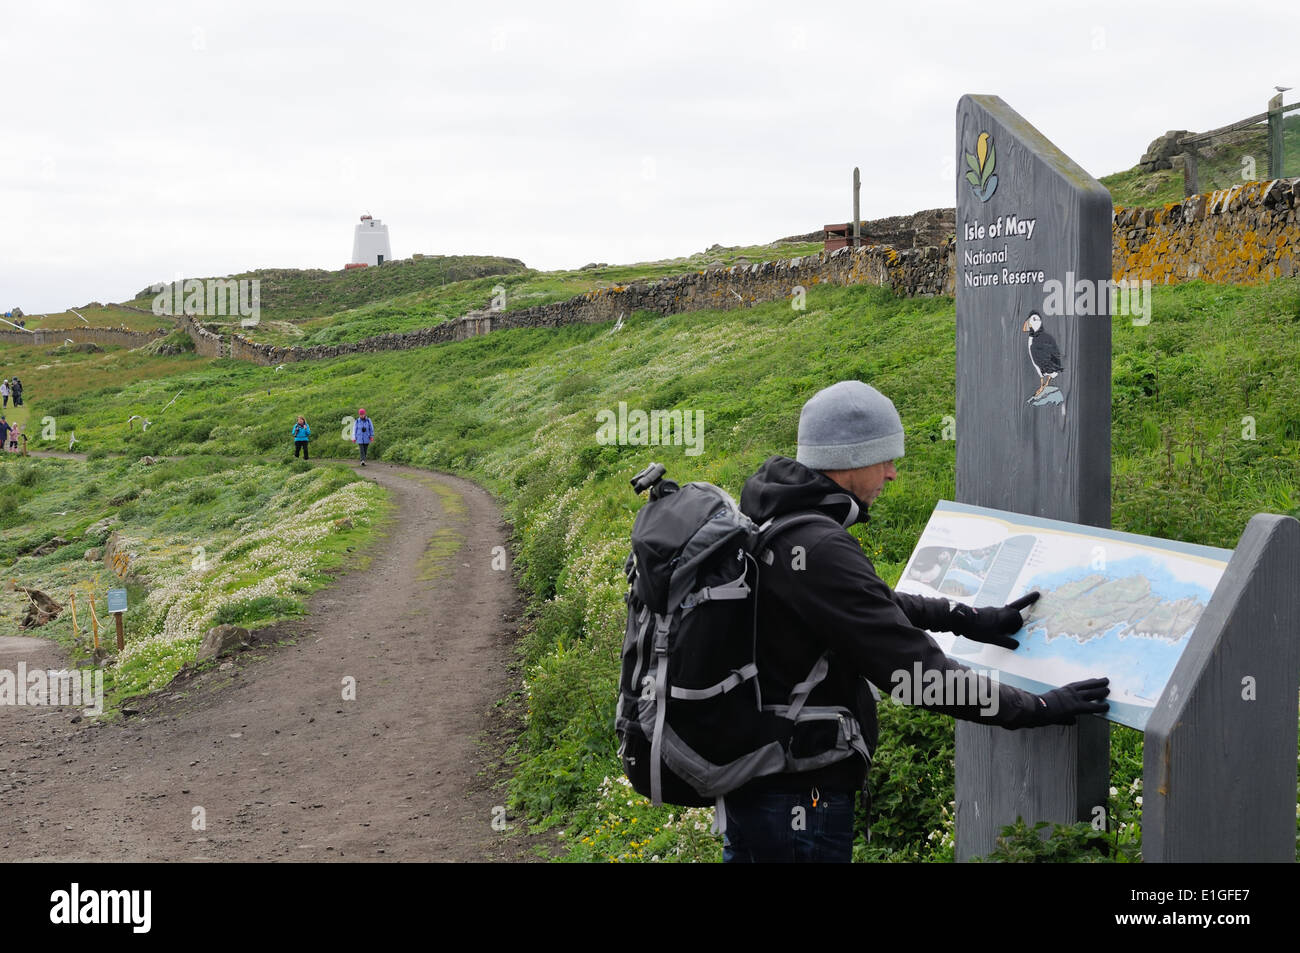 Backpacker studies a pictorial map of the Isle of May National Nature Reserve, Scotland, UK - Stock Image